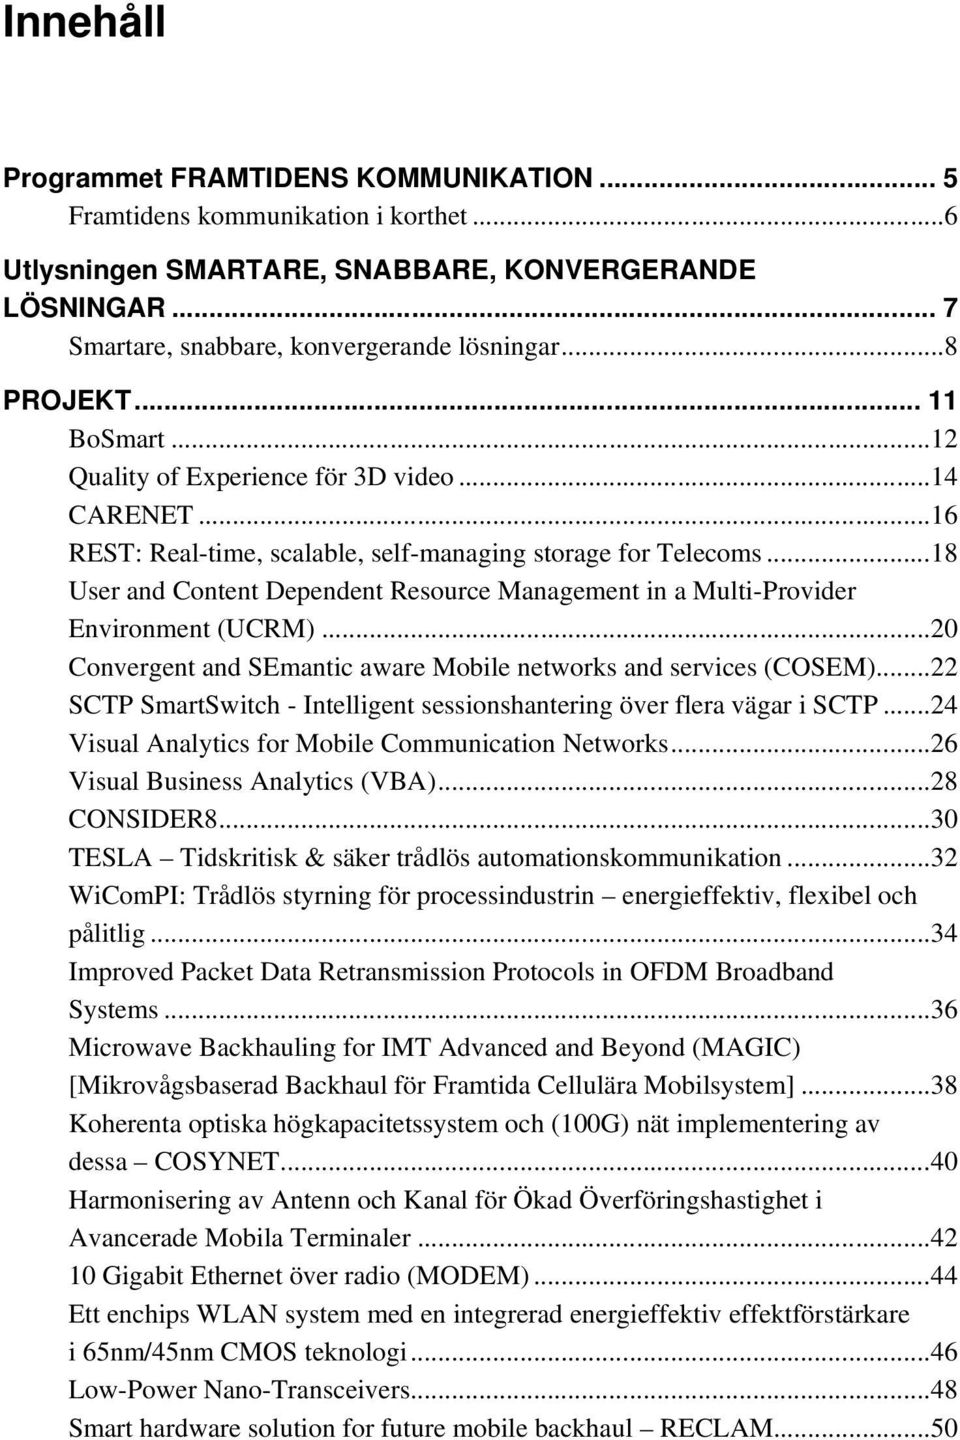 .. 18 User and Content Dependent Resource Management in a Multi-Provider Environment (UCRM)... 20 Convergent and SEmantic aware Mobile networks and services (COSEM).